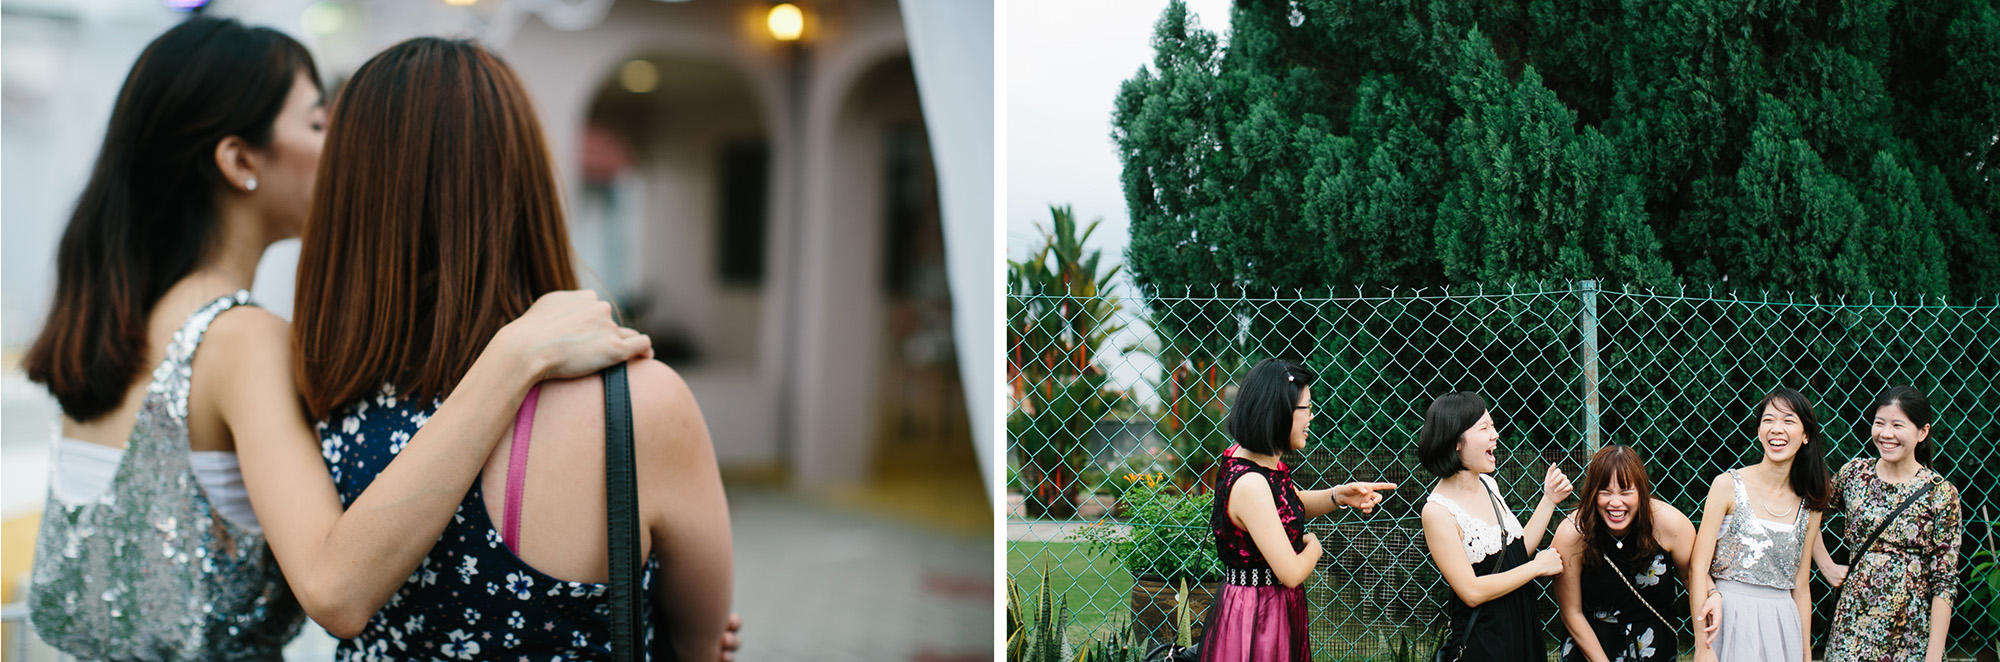 79-hellojanelee-sam grace-malaysia-wedding-day